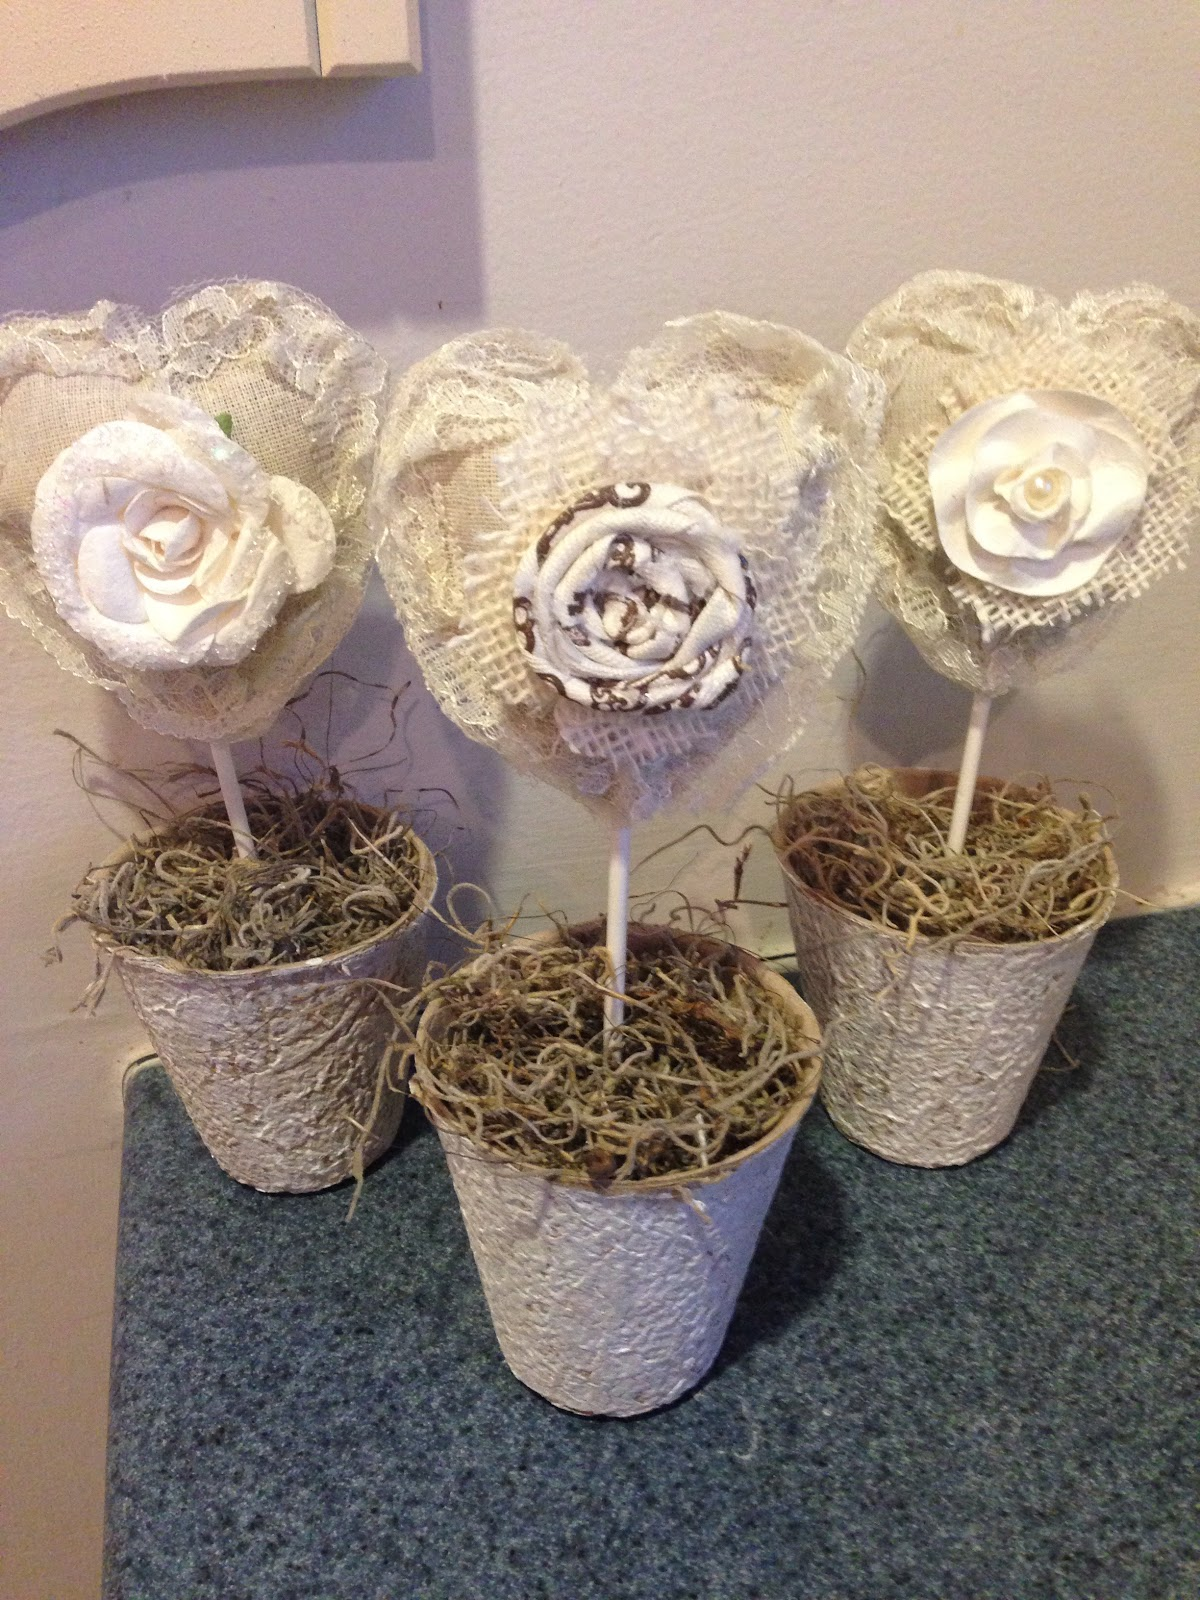 No-Sew Fabric Hearts in Peat Pots - HMLP Feature